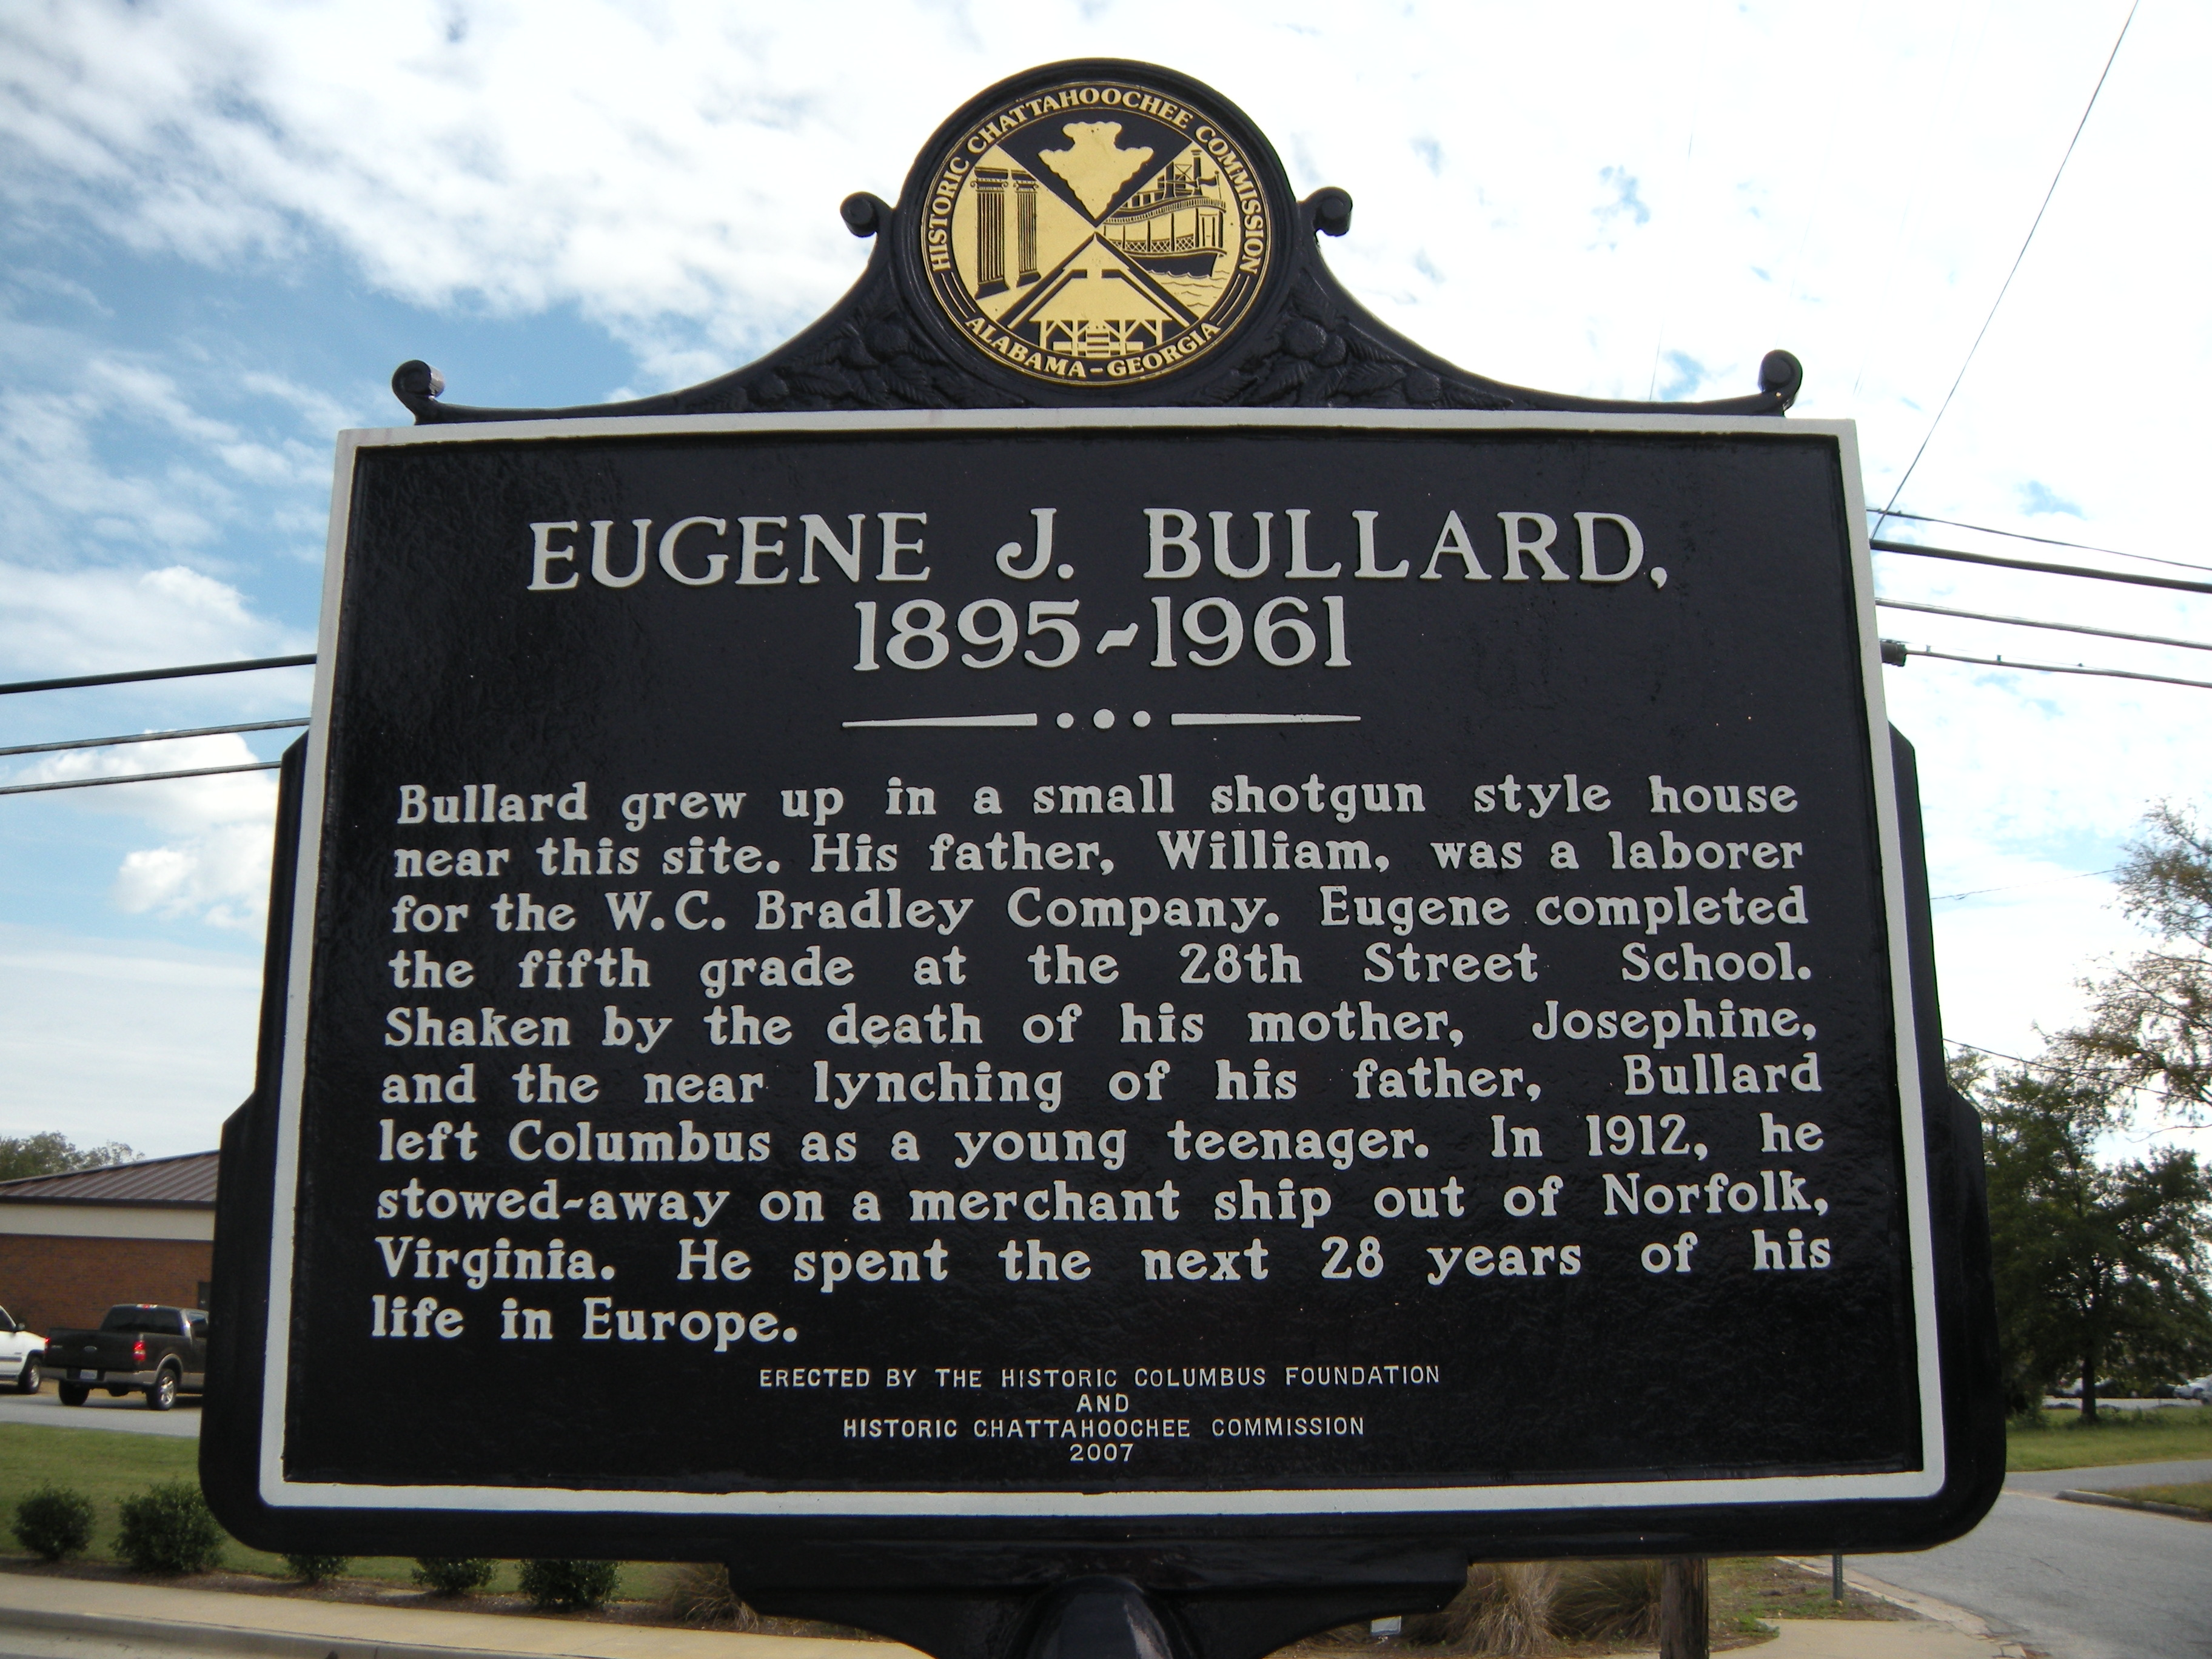 Quotes by Eugene Bulla...